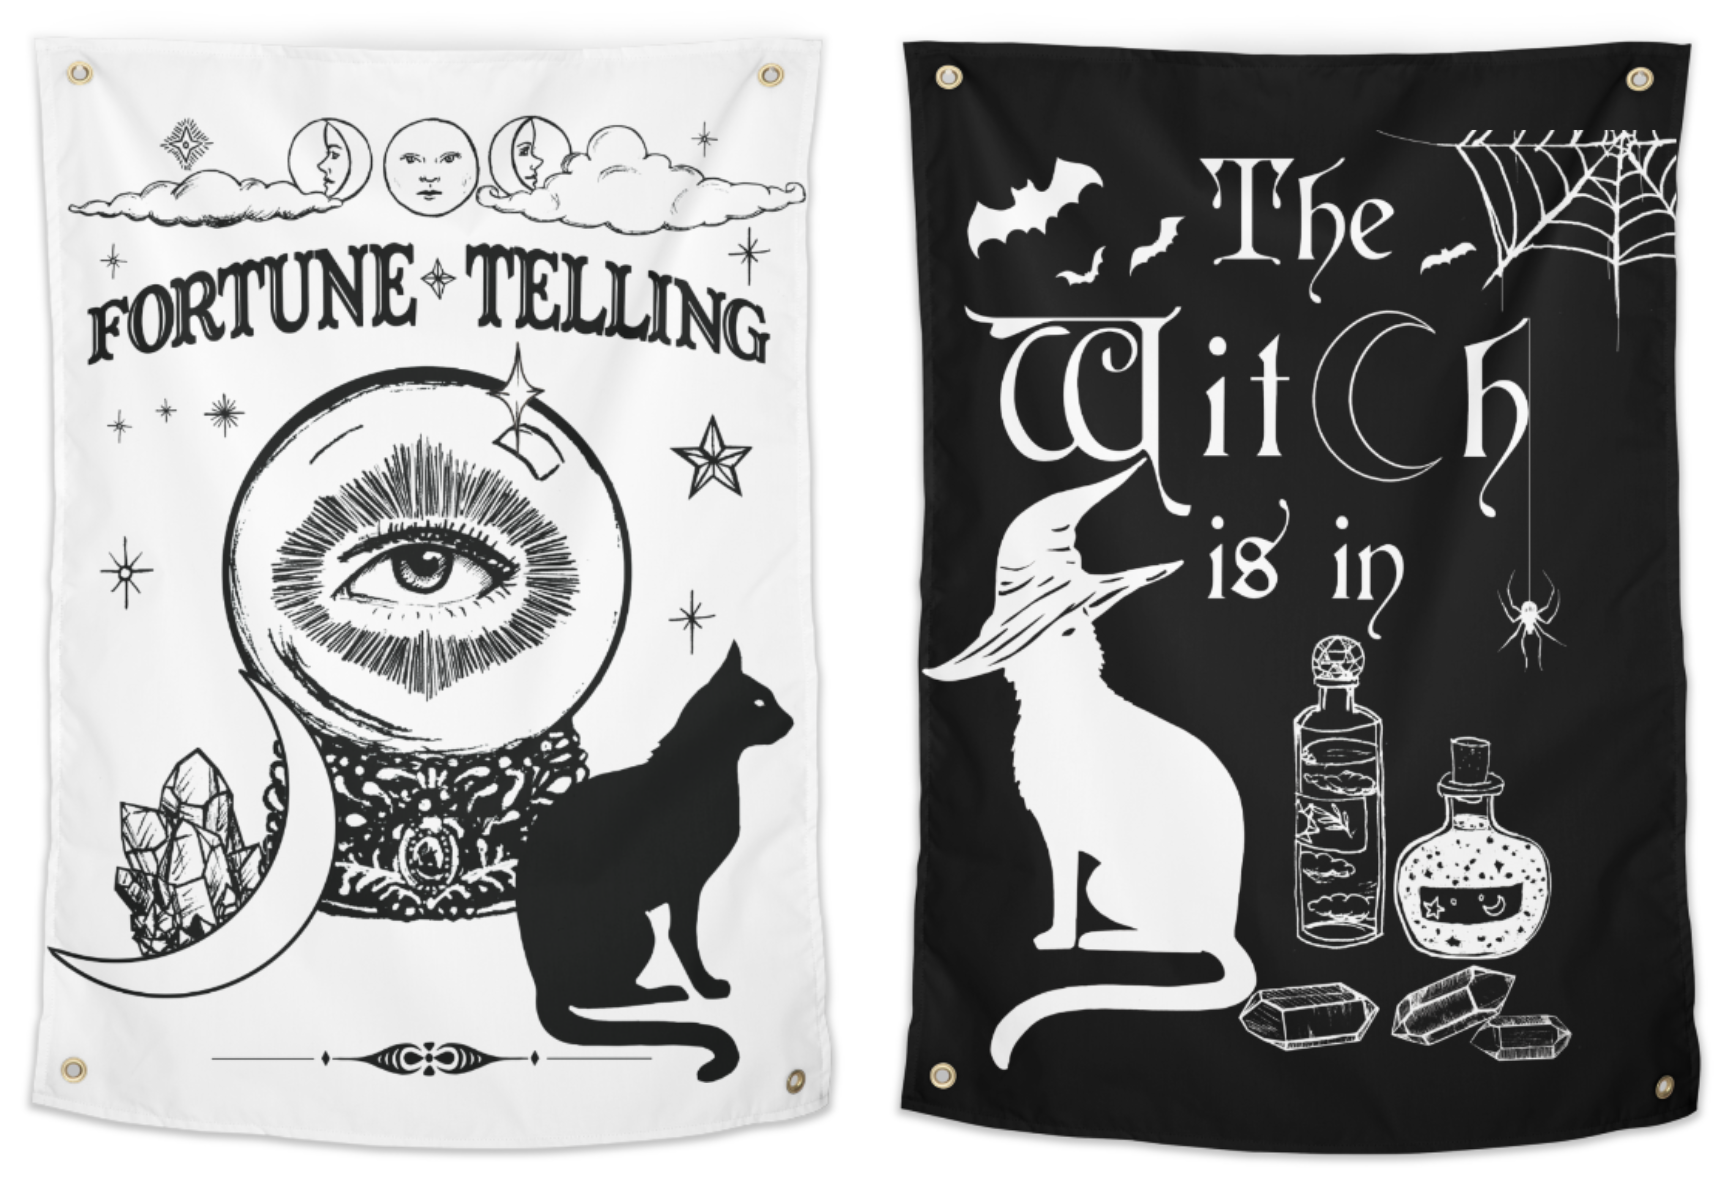 Vintage Style Fortune Telling Sign and tapestries  for psychic fairs